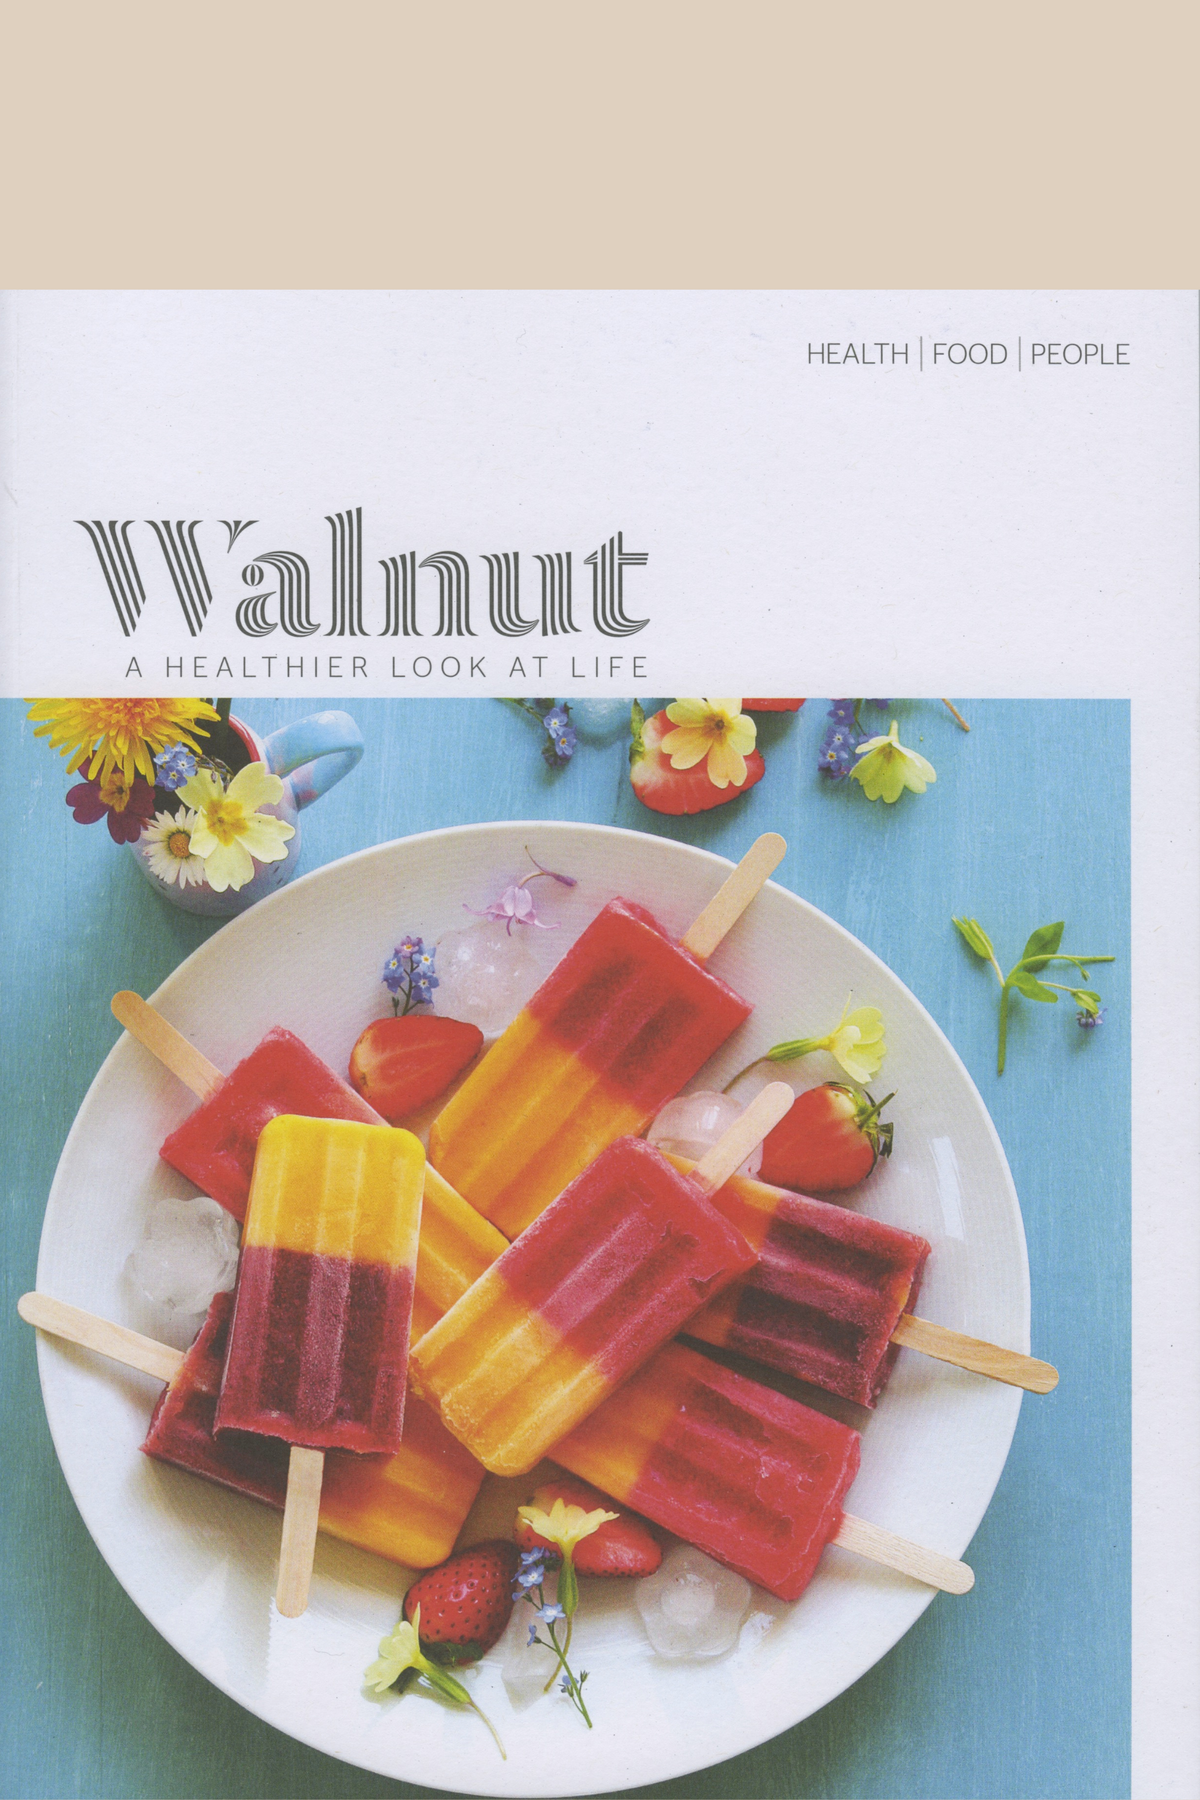 Walnut Issue 7